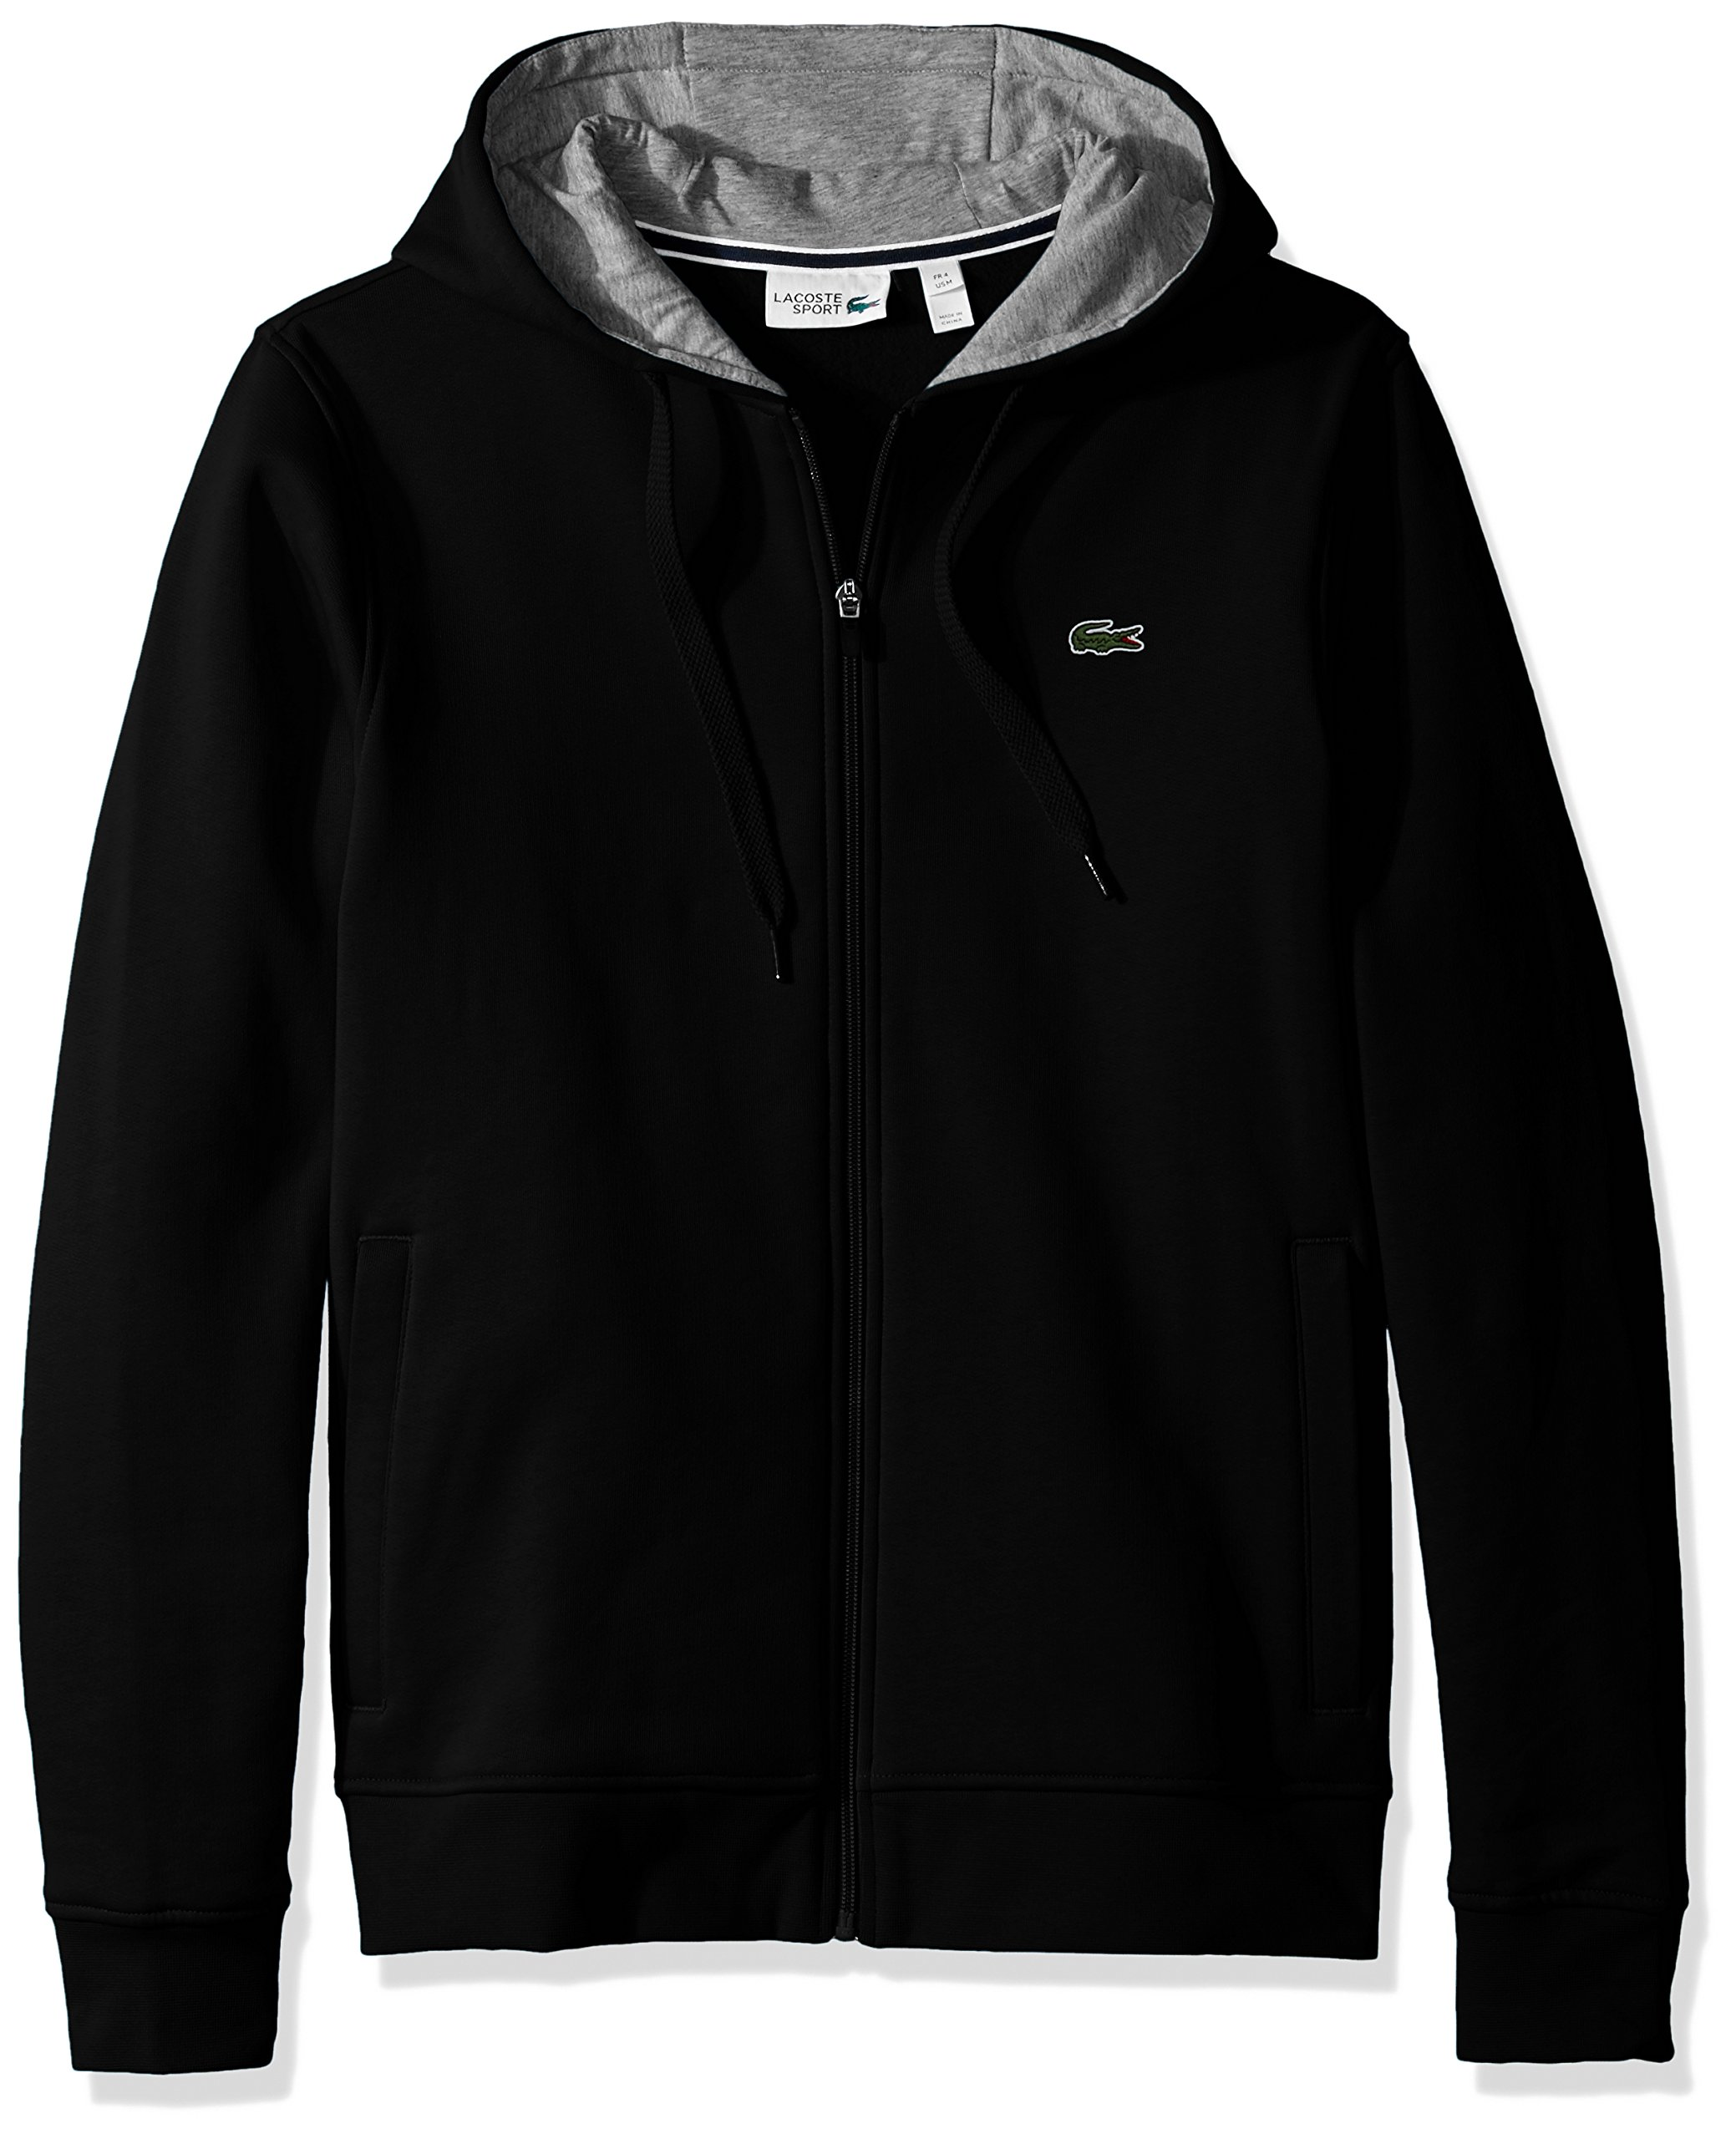 Lacoste Men's Full Zip Hoodie Fleece Sweatshirt, SH7609, Black/Silver Chine, XX-Large by Lacoste